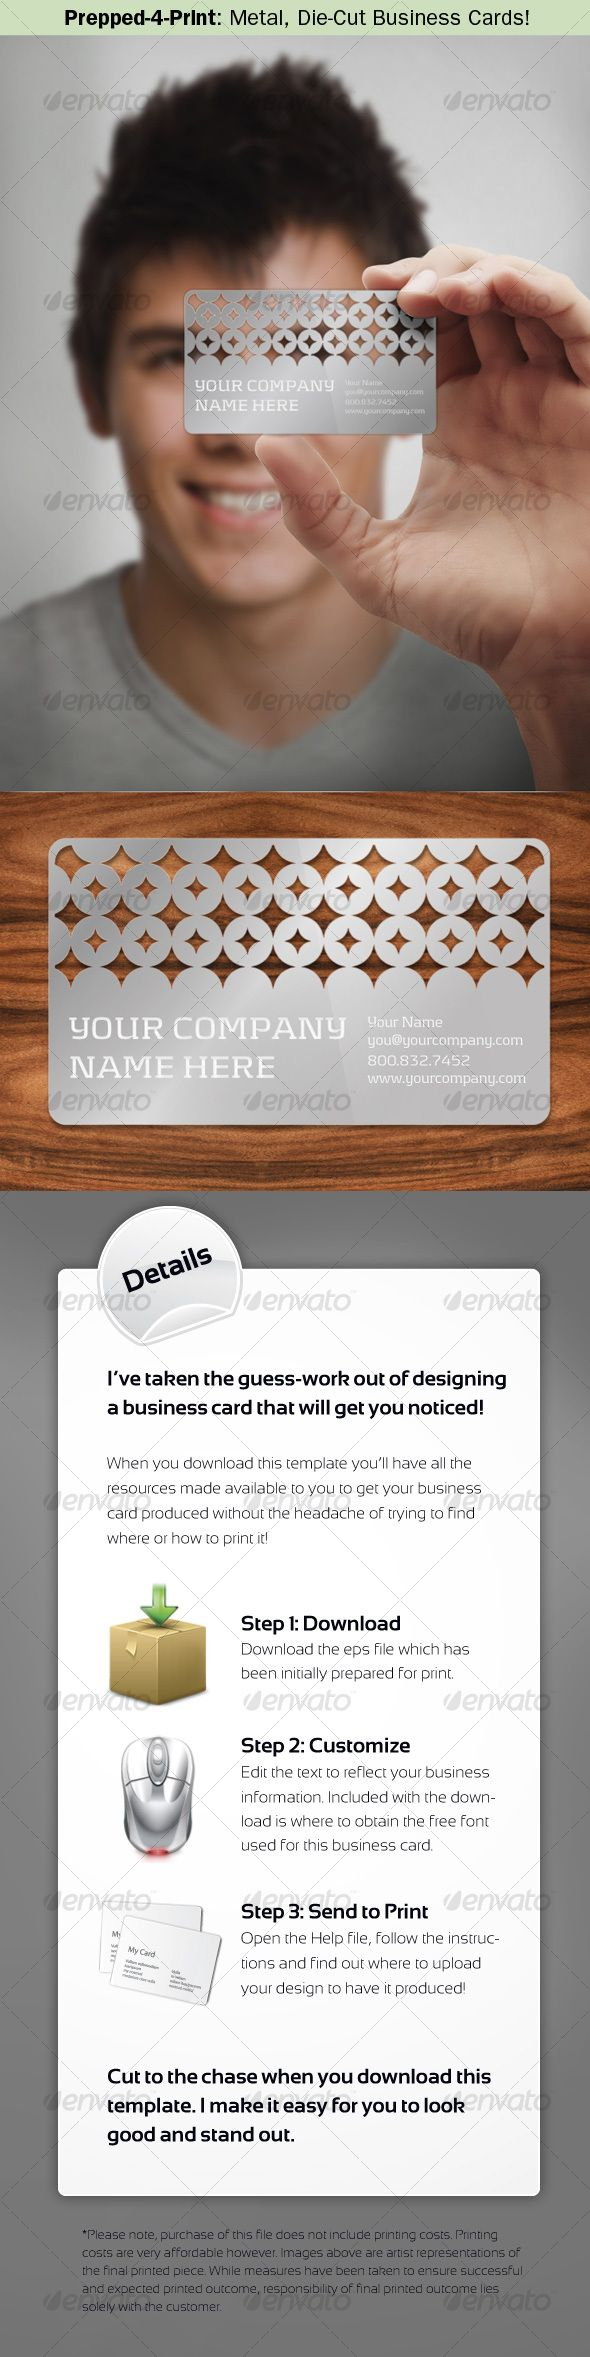 251 best Business Cards images on Pinterest | Business cards ...